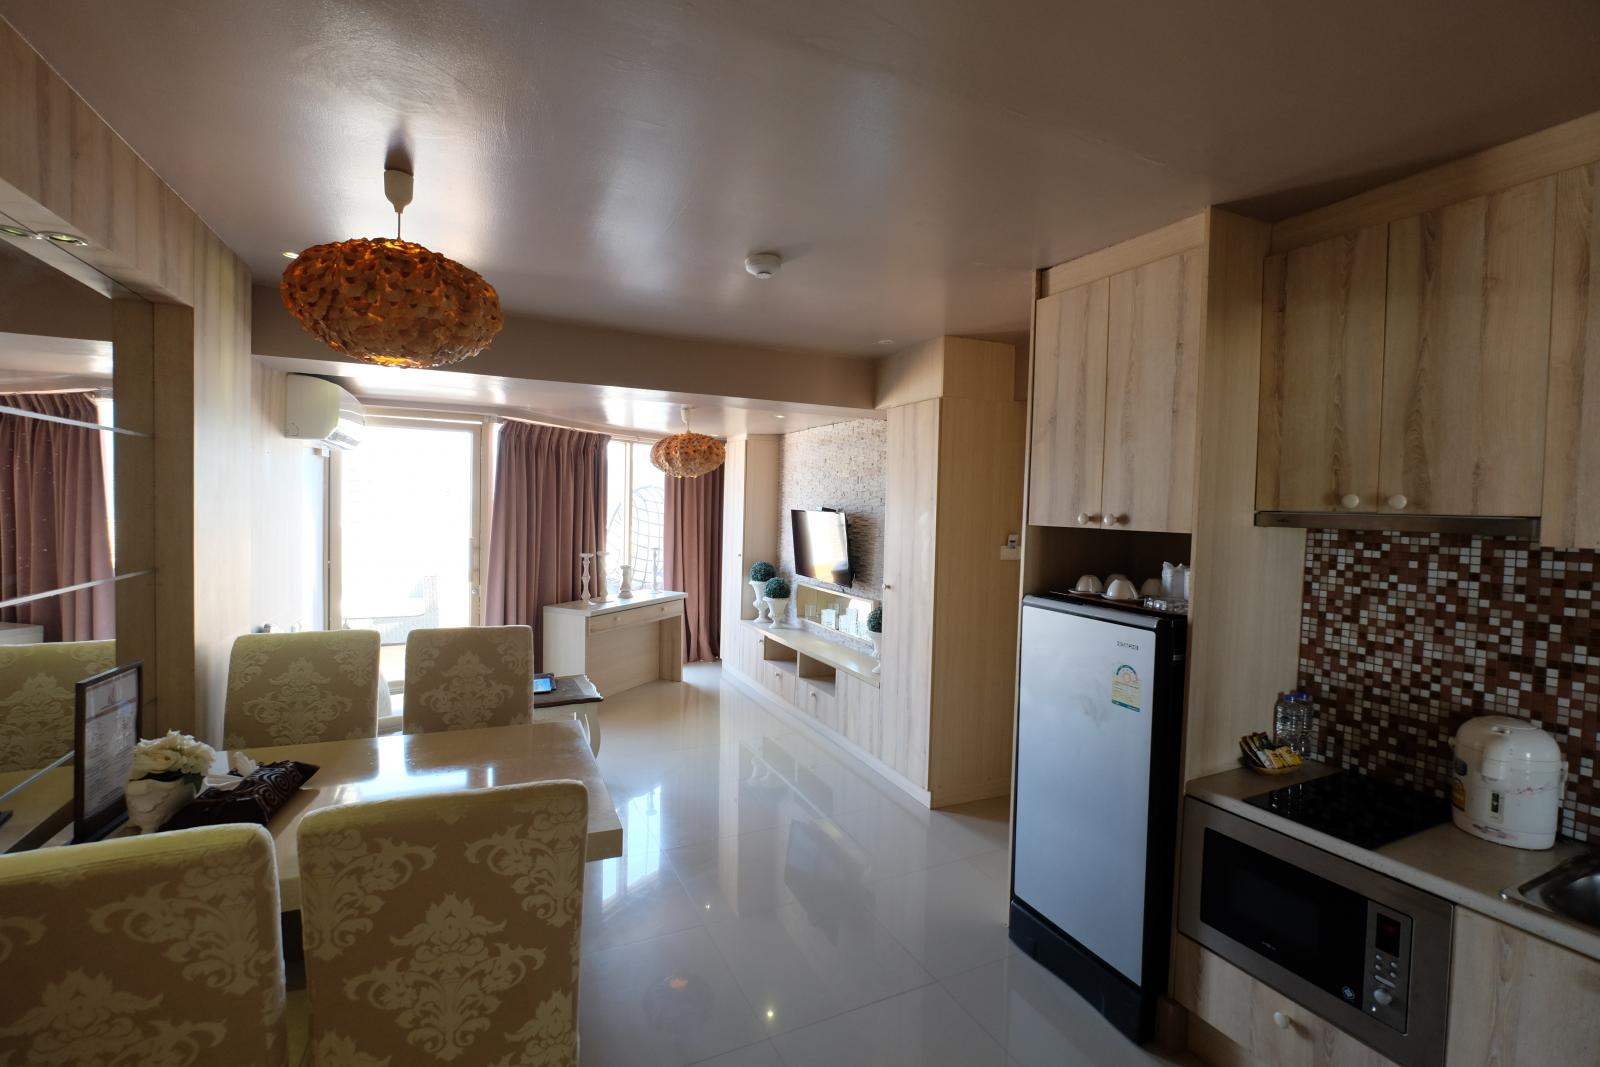 Phuket luxury 2 bedroom sea view condo for sale in patong for Hotel decor for sale